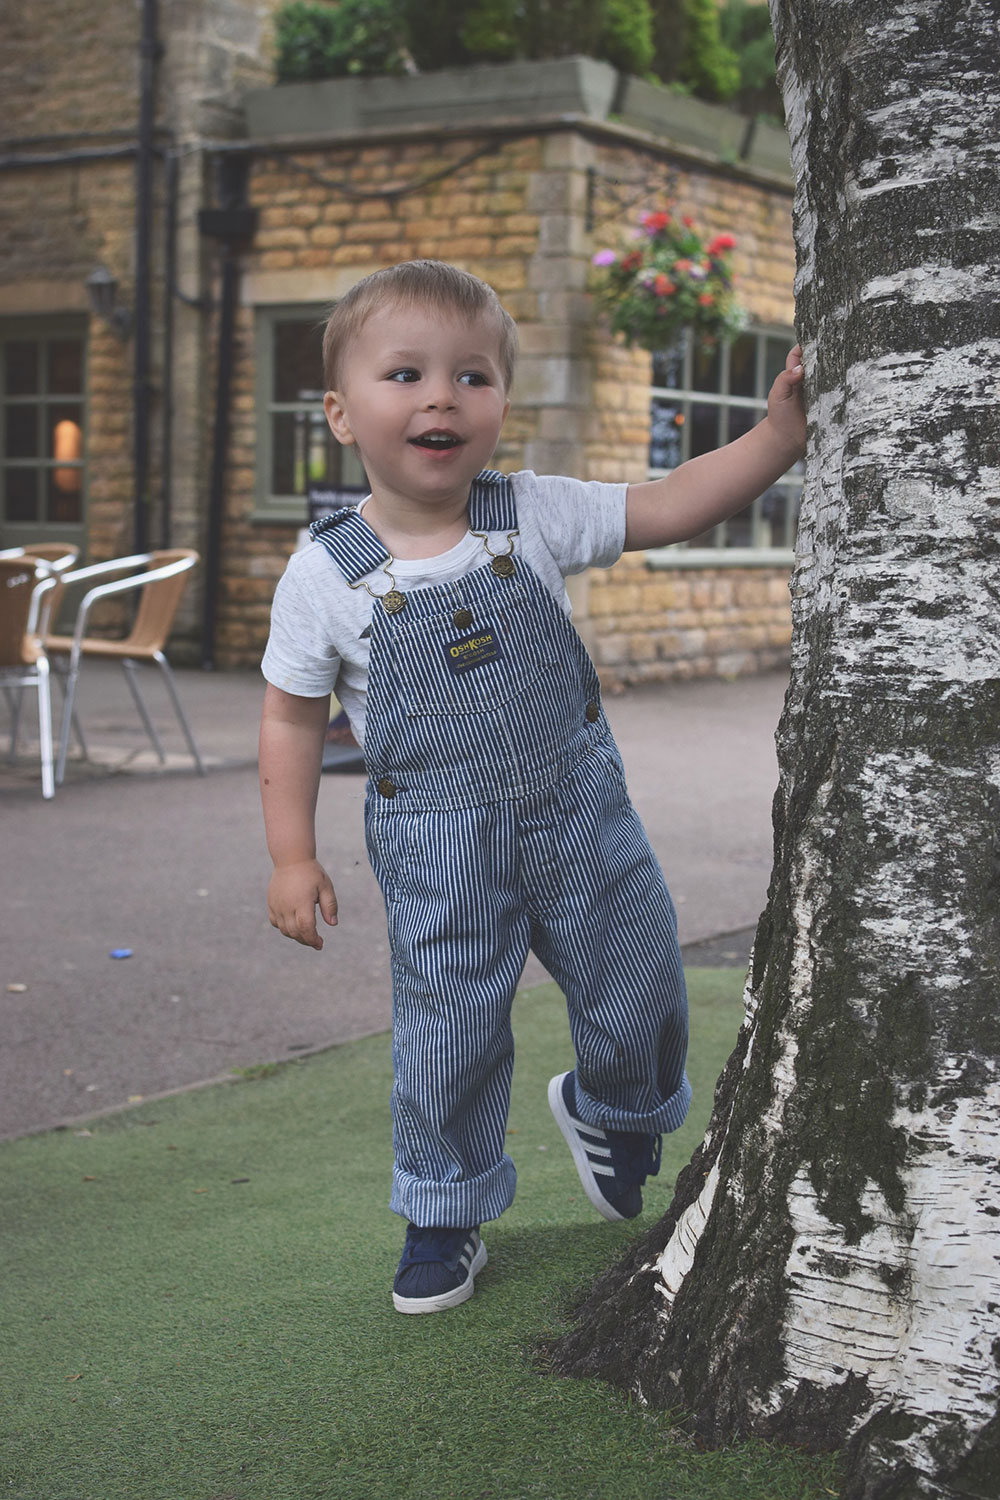 Fashion Friday; That Daring Young Man in the Blue Dungarees  // 043 - Toddler wearing Osh Kosh B'Gosh blue stripy vintage 1990's dungarees, H&M 'ledge' baseball cap, F&F chunky knit cardigan and ADDIDAS blue hard shell trainers